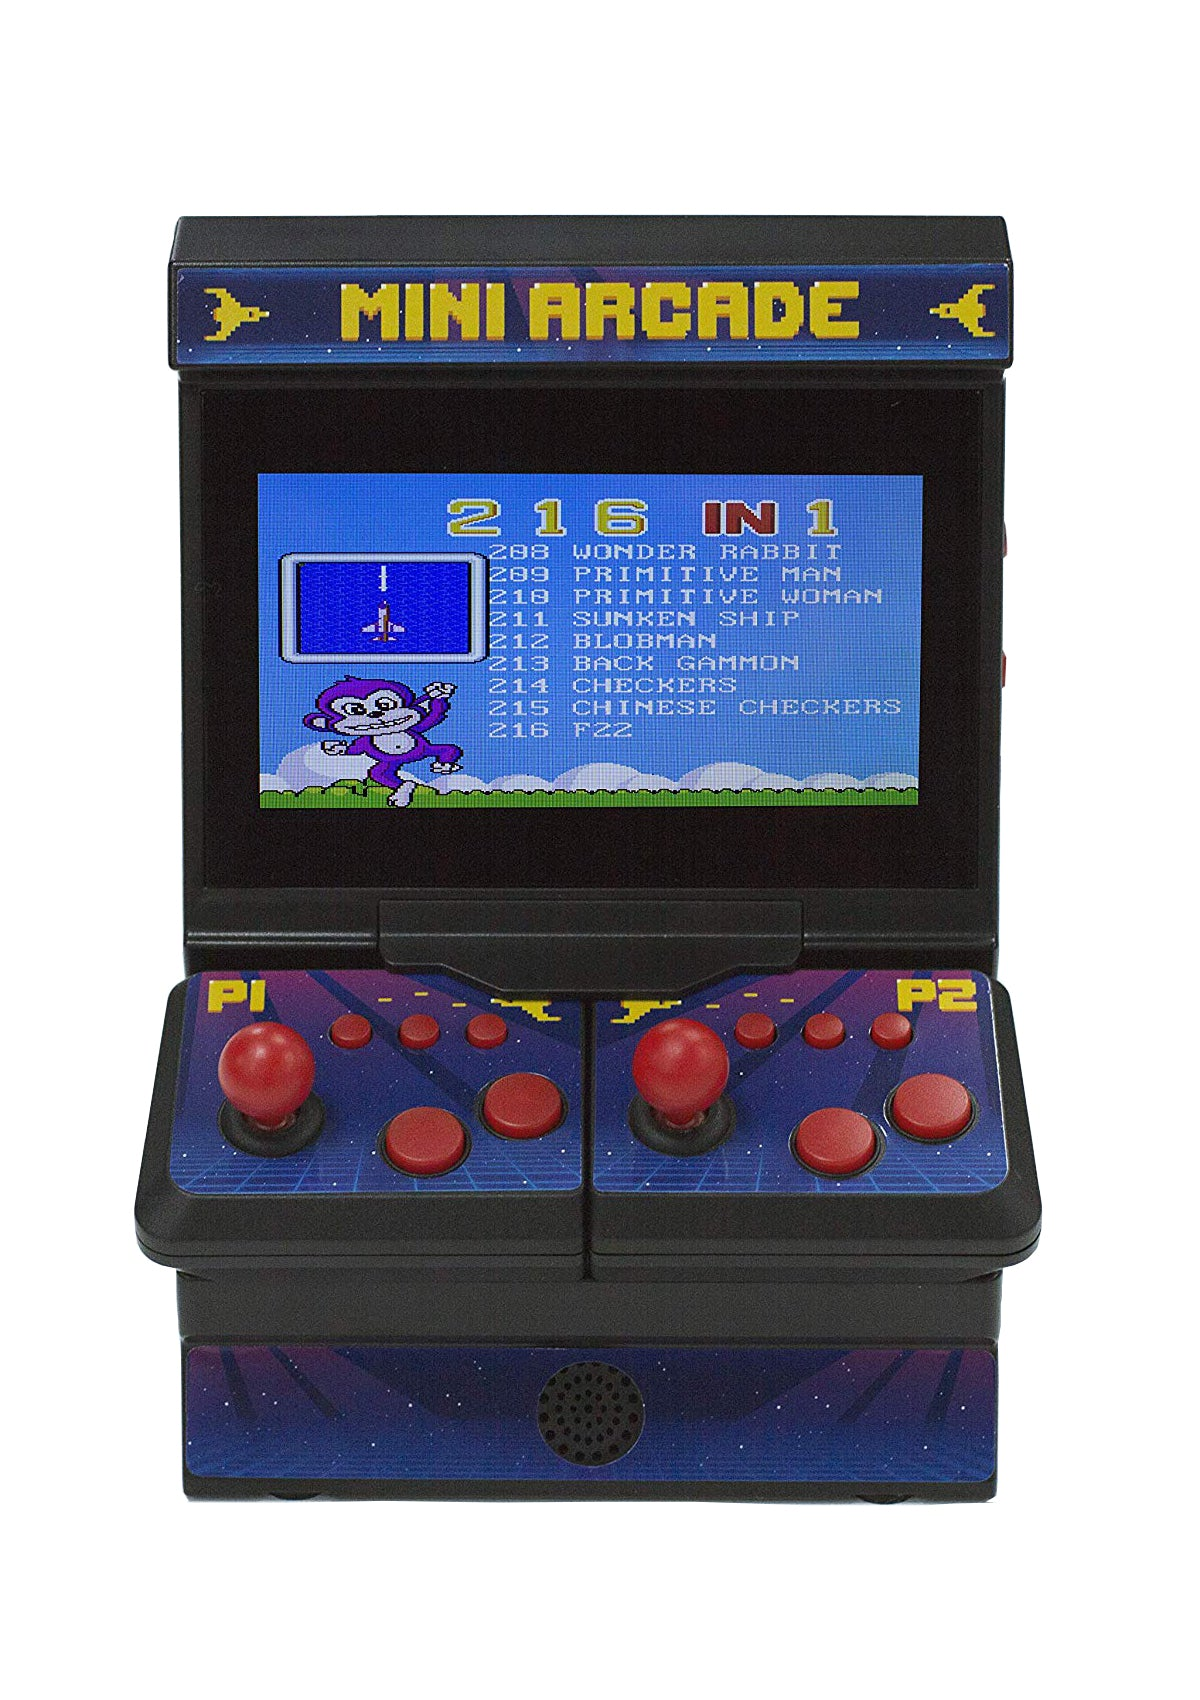 Retro 2 Player Arcade Machine with 300 Games